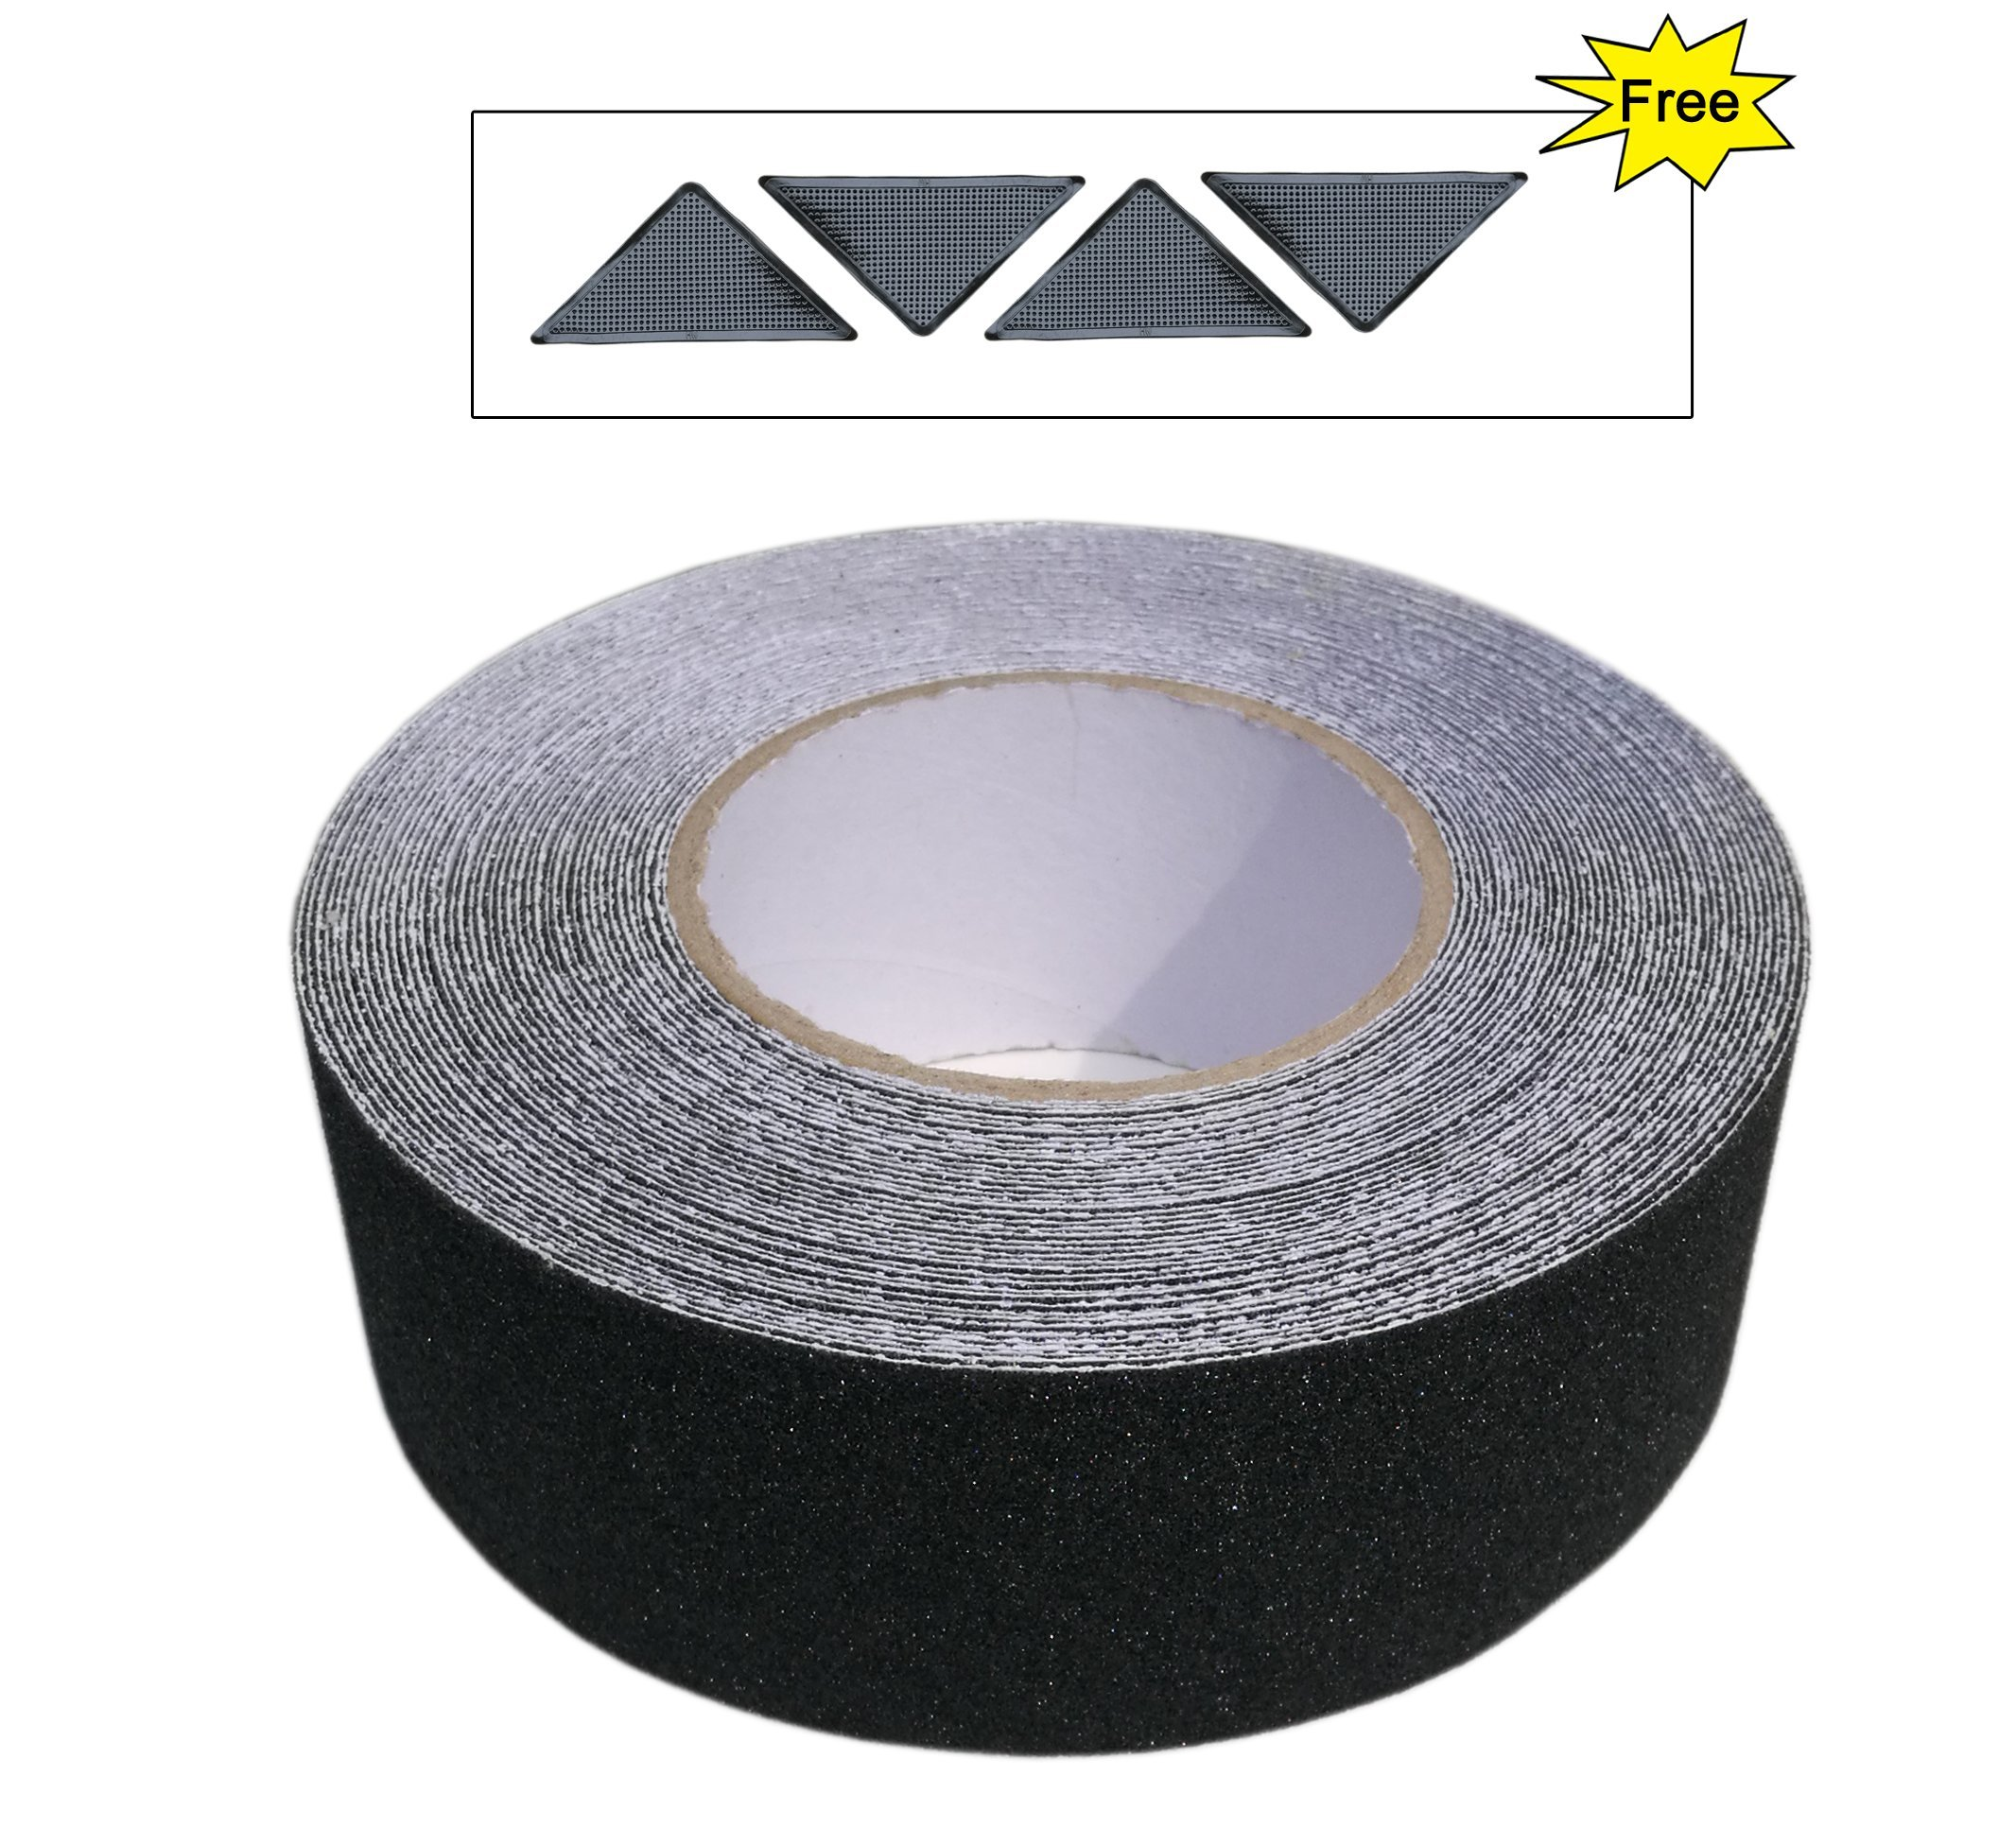 Anti Slip Tape, Non Skid Safety Walk Abrasive Adhesive Tape for Outdoor Indoor Stairs, Steps, Treads, Floors, Decking, High Traction Strong Grip, 2 Inch by 50 Feet with Free Rug Grippers, Black